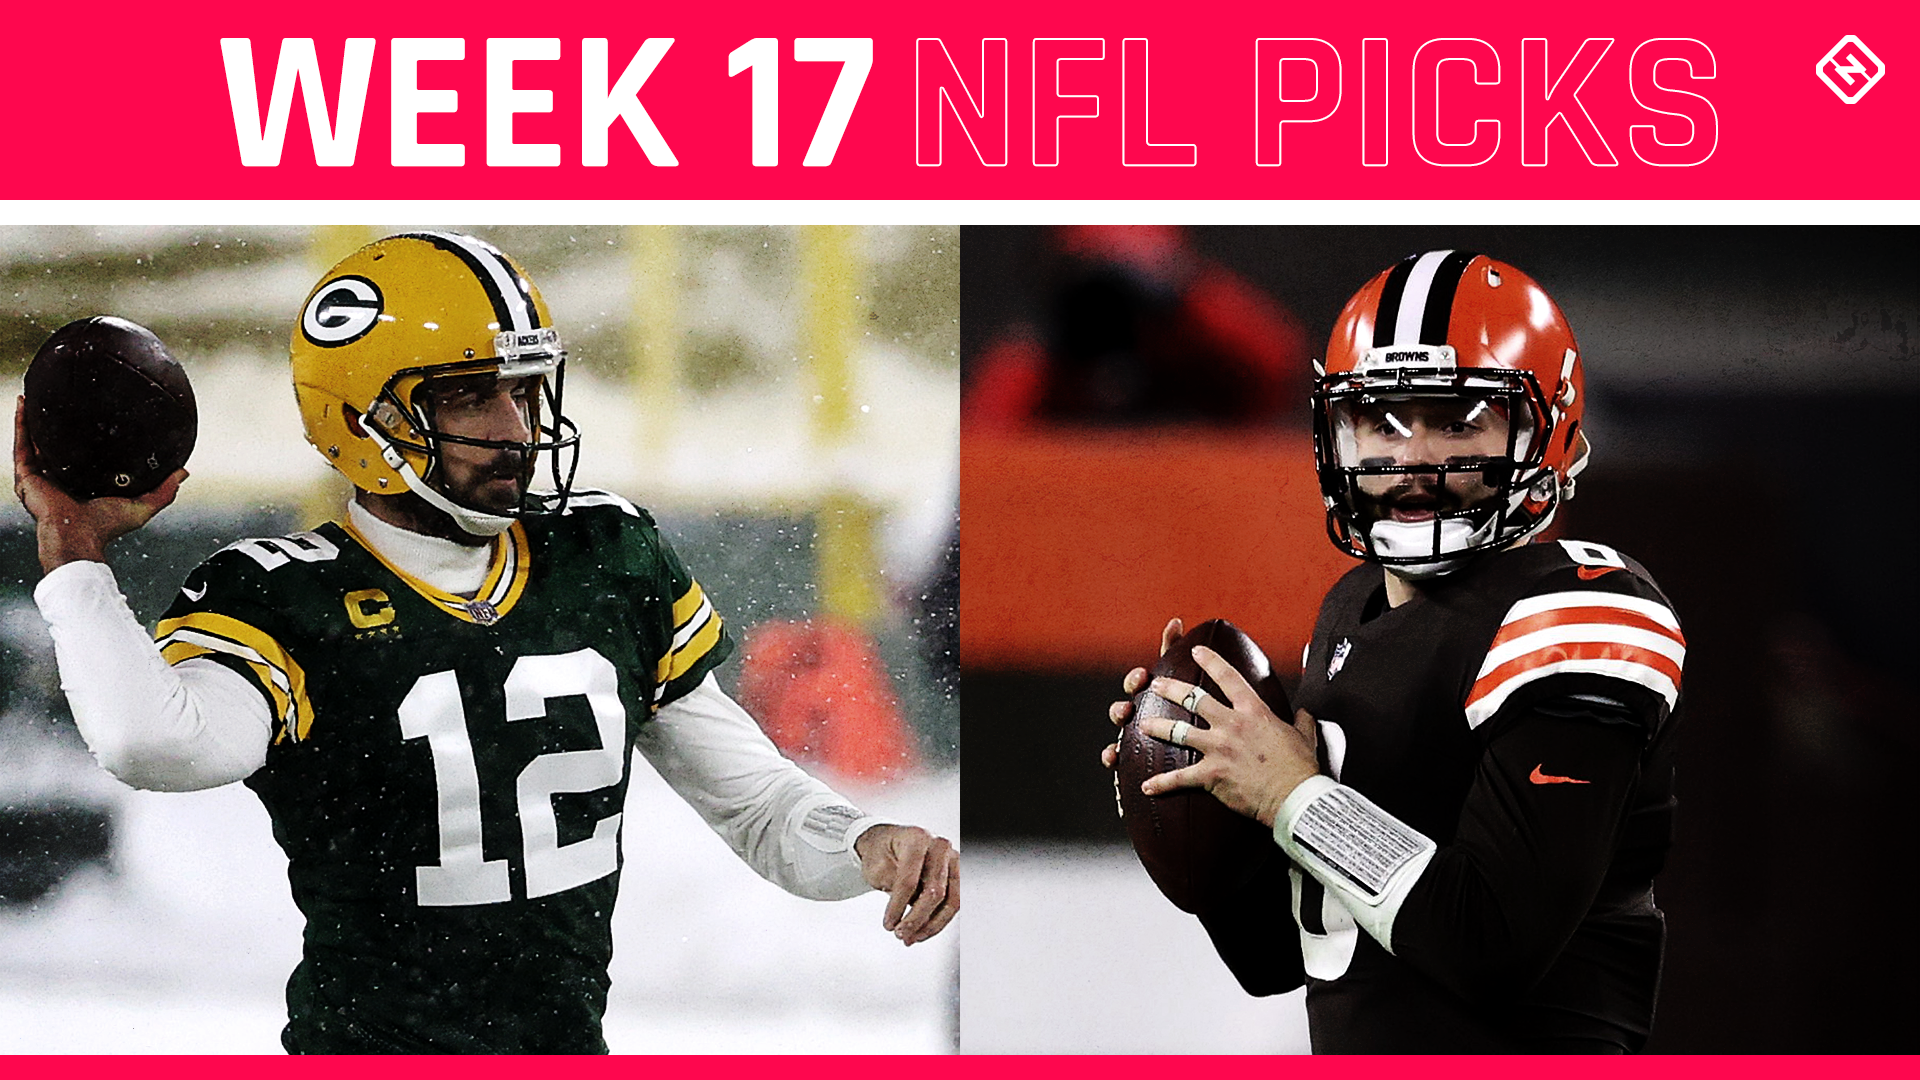 NFL picks, predictions for Week 17: Browns edge Steelers; Packers dash Bears' playoff hopes; Washington wins NFC East